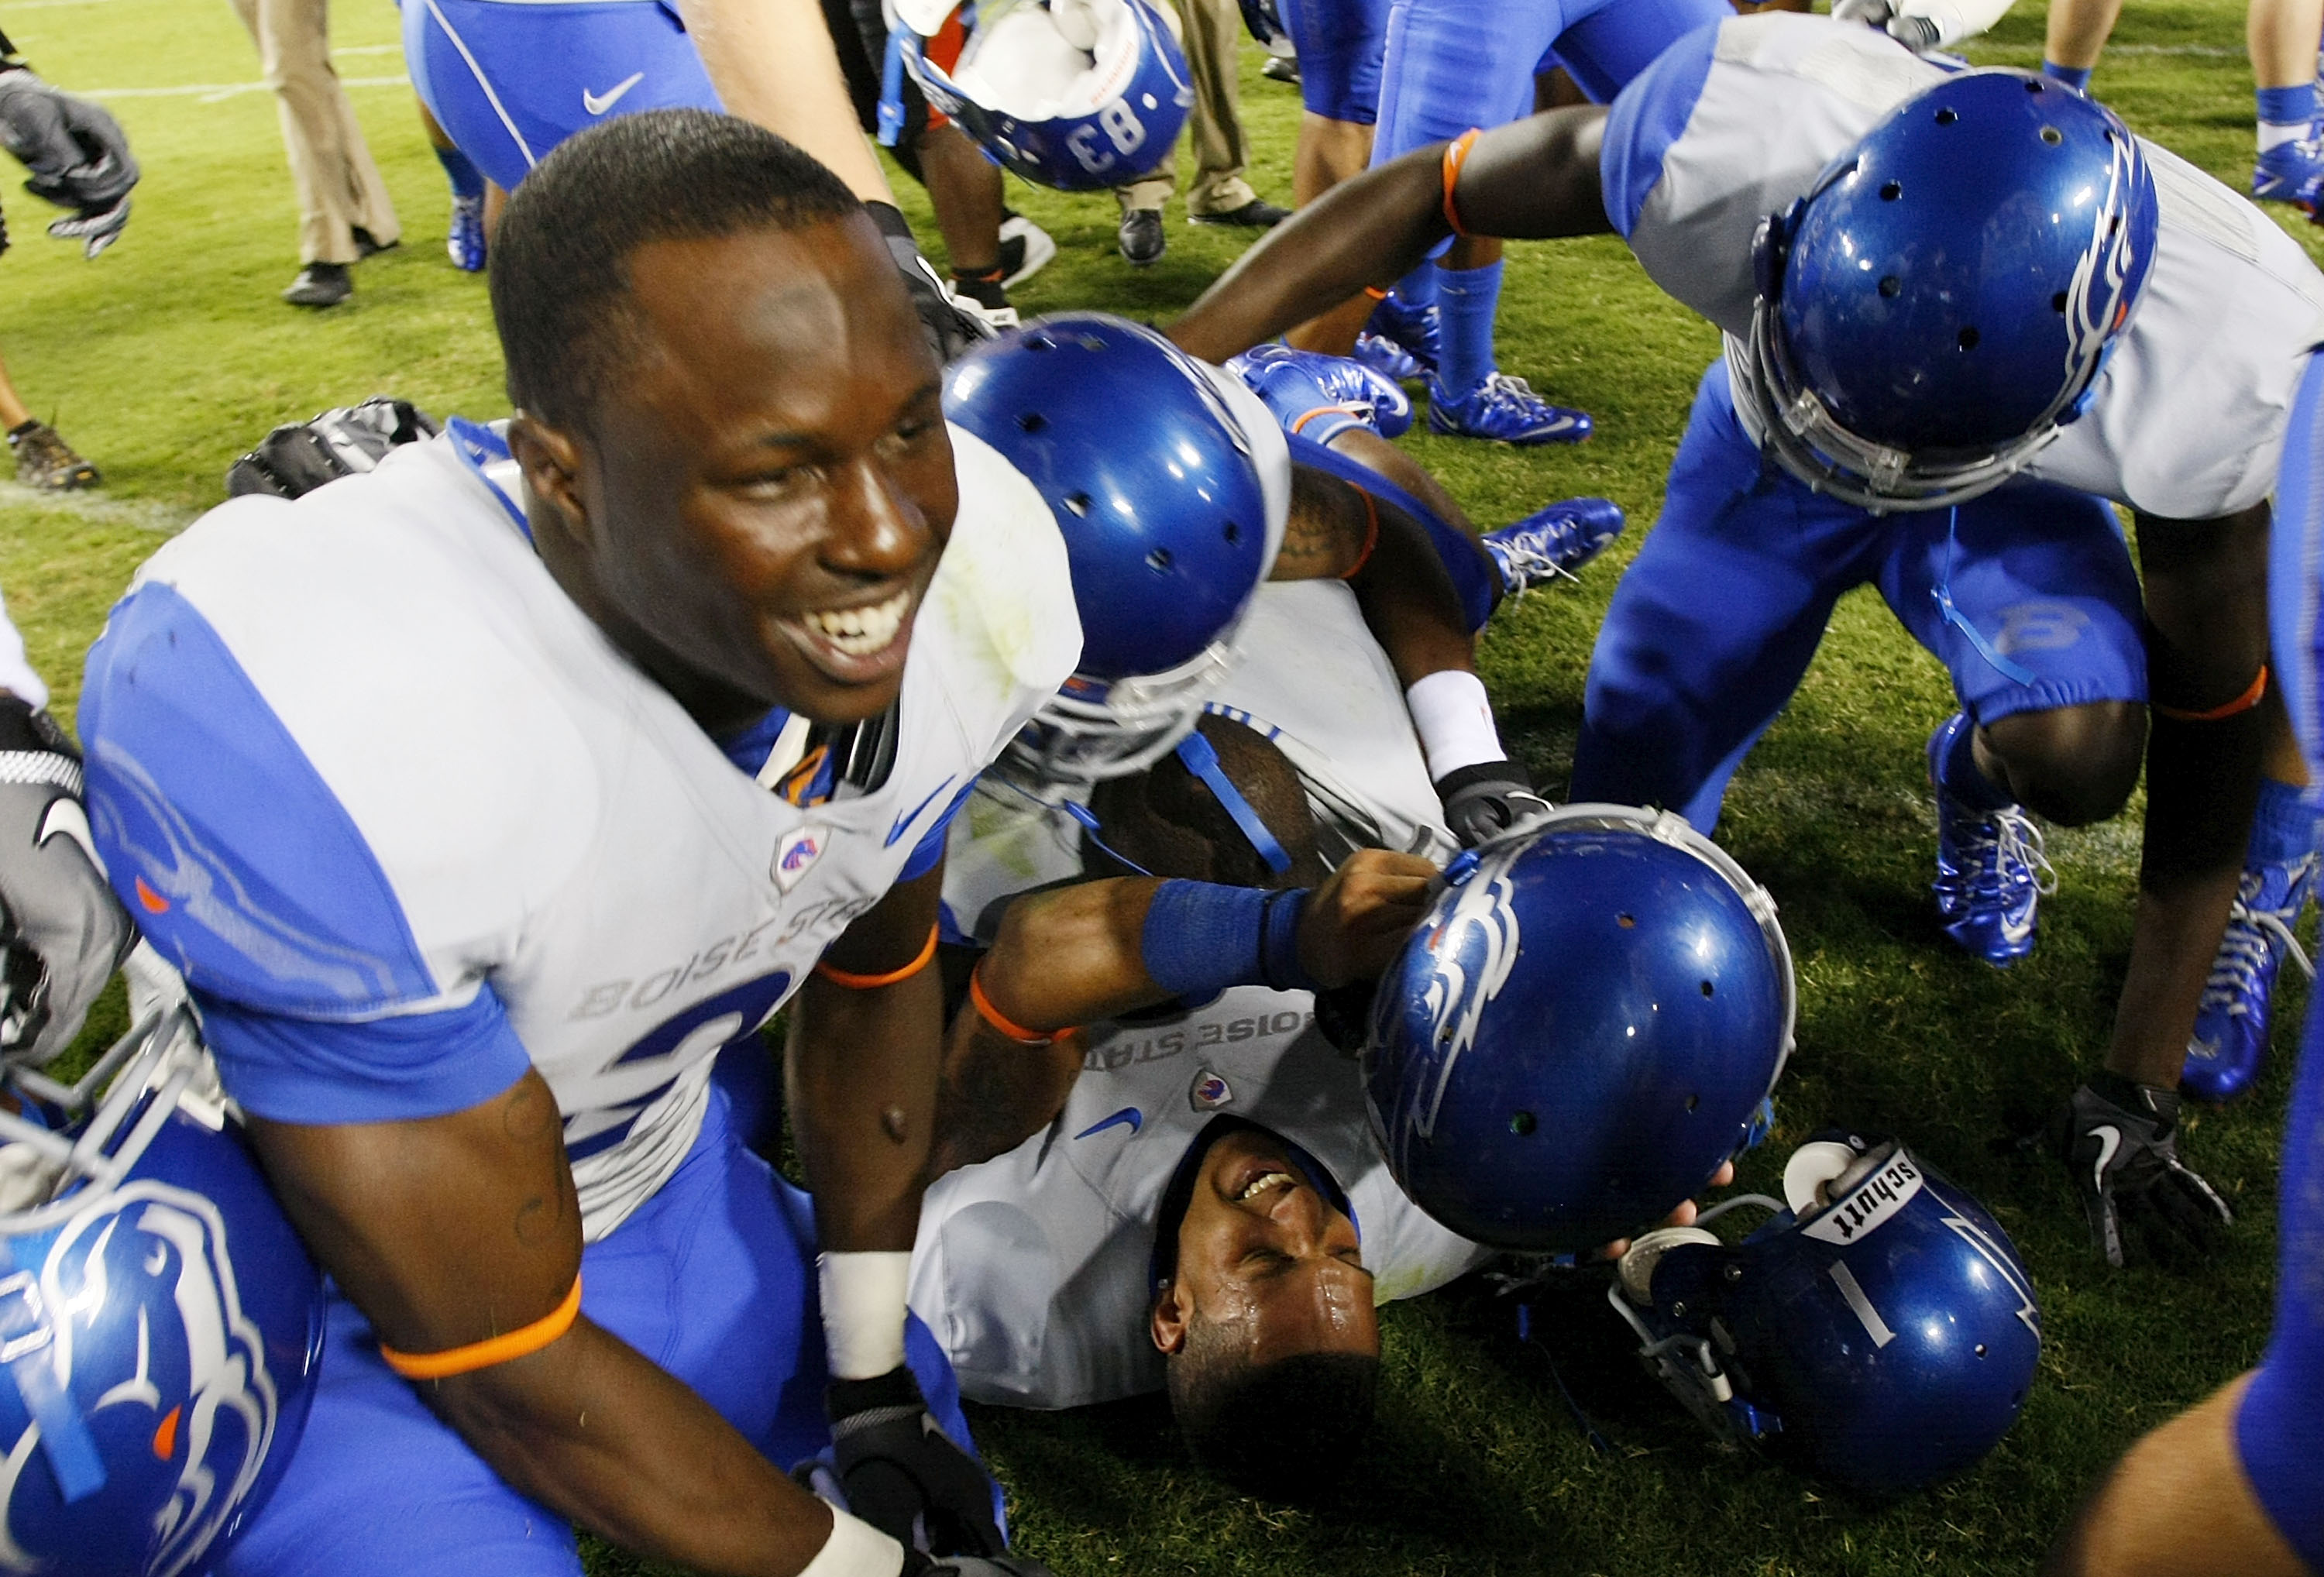 LANDOVER, MD - SEPTEMBER 06:  Wide reciever Austin Pettis (bottom) of the Boise State Broncos is mobbed by teammates after the Broncos defeated the Virginia Tech Hokies 33-30  at FedExField on September 6, 2010 in Landover, Maryland.  (Photo by Geoff Burk